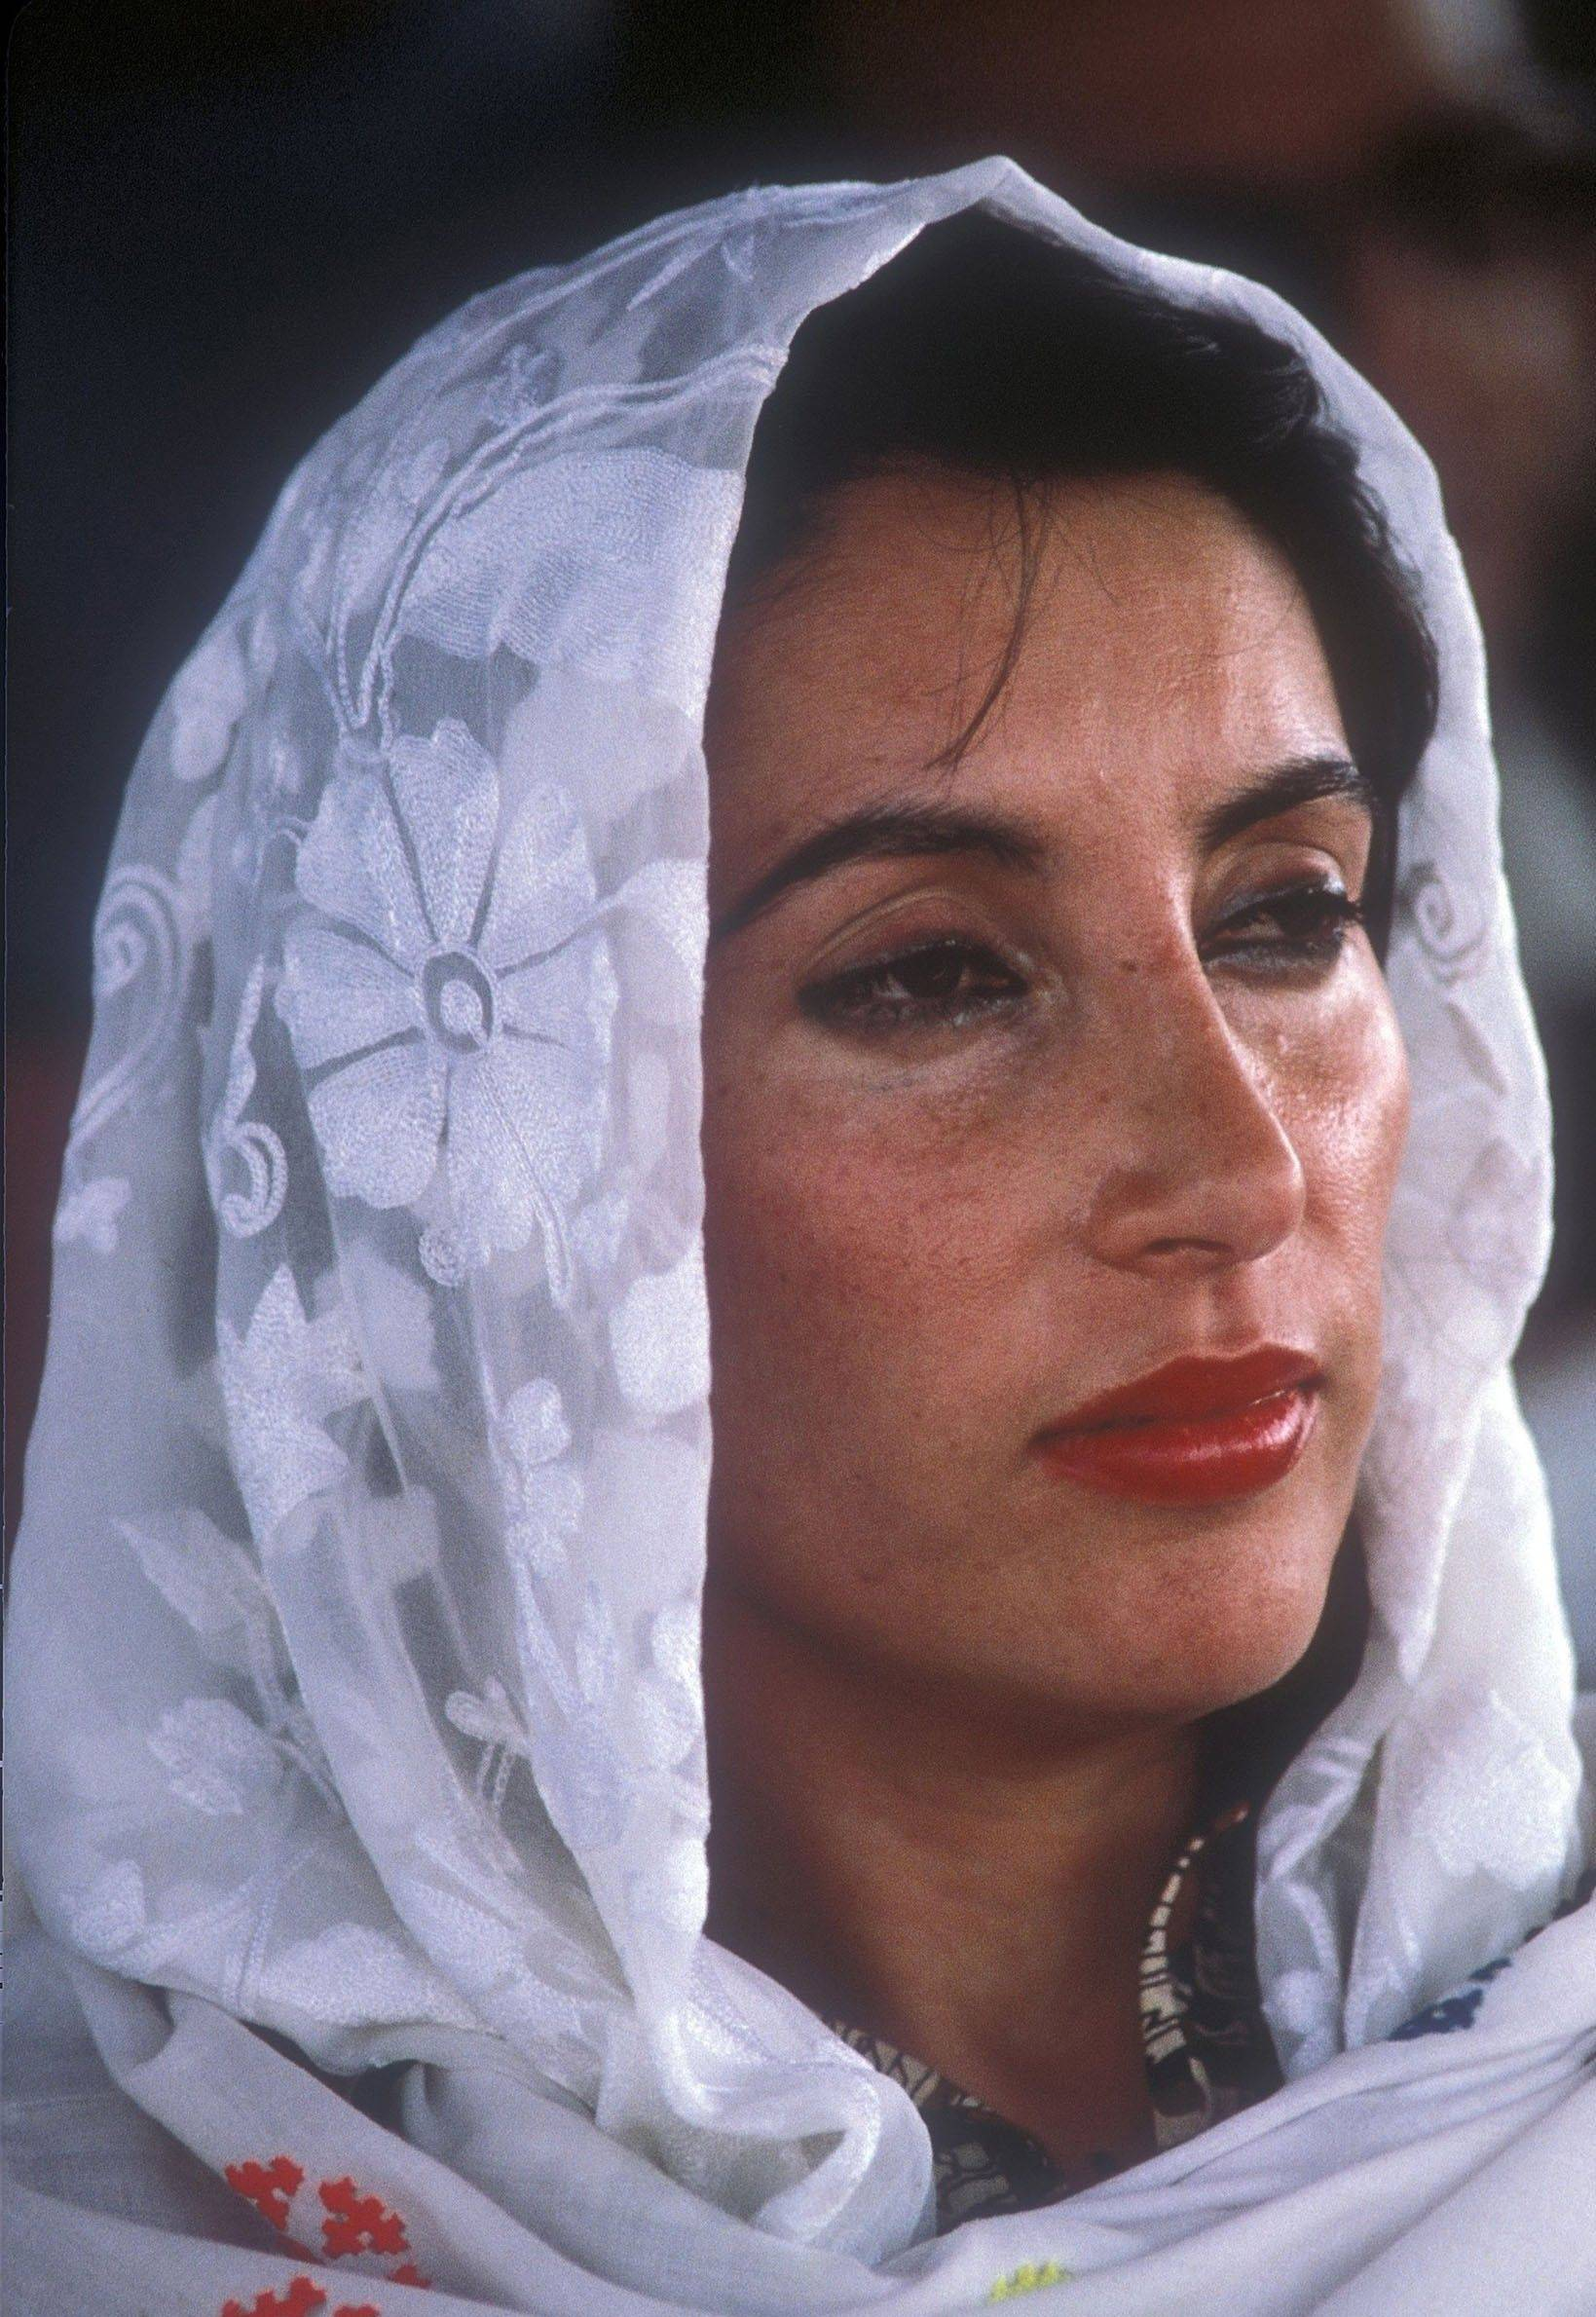 Benazir Bhutto was killed in 2007 during a gun and bomb attack at a rally. The daughter of former Prime Minister Zulfikar Ali Bhutto, who was executed in 1977 after being deposed in a coup, she was respected in Pakistan for her political commitment -- she was jailed multiple times -- and her condemnation of militancy and support for Pakistan's poor.